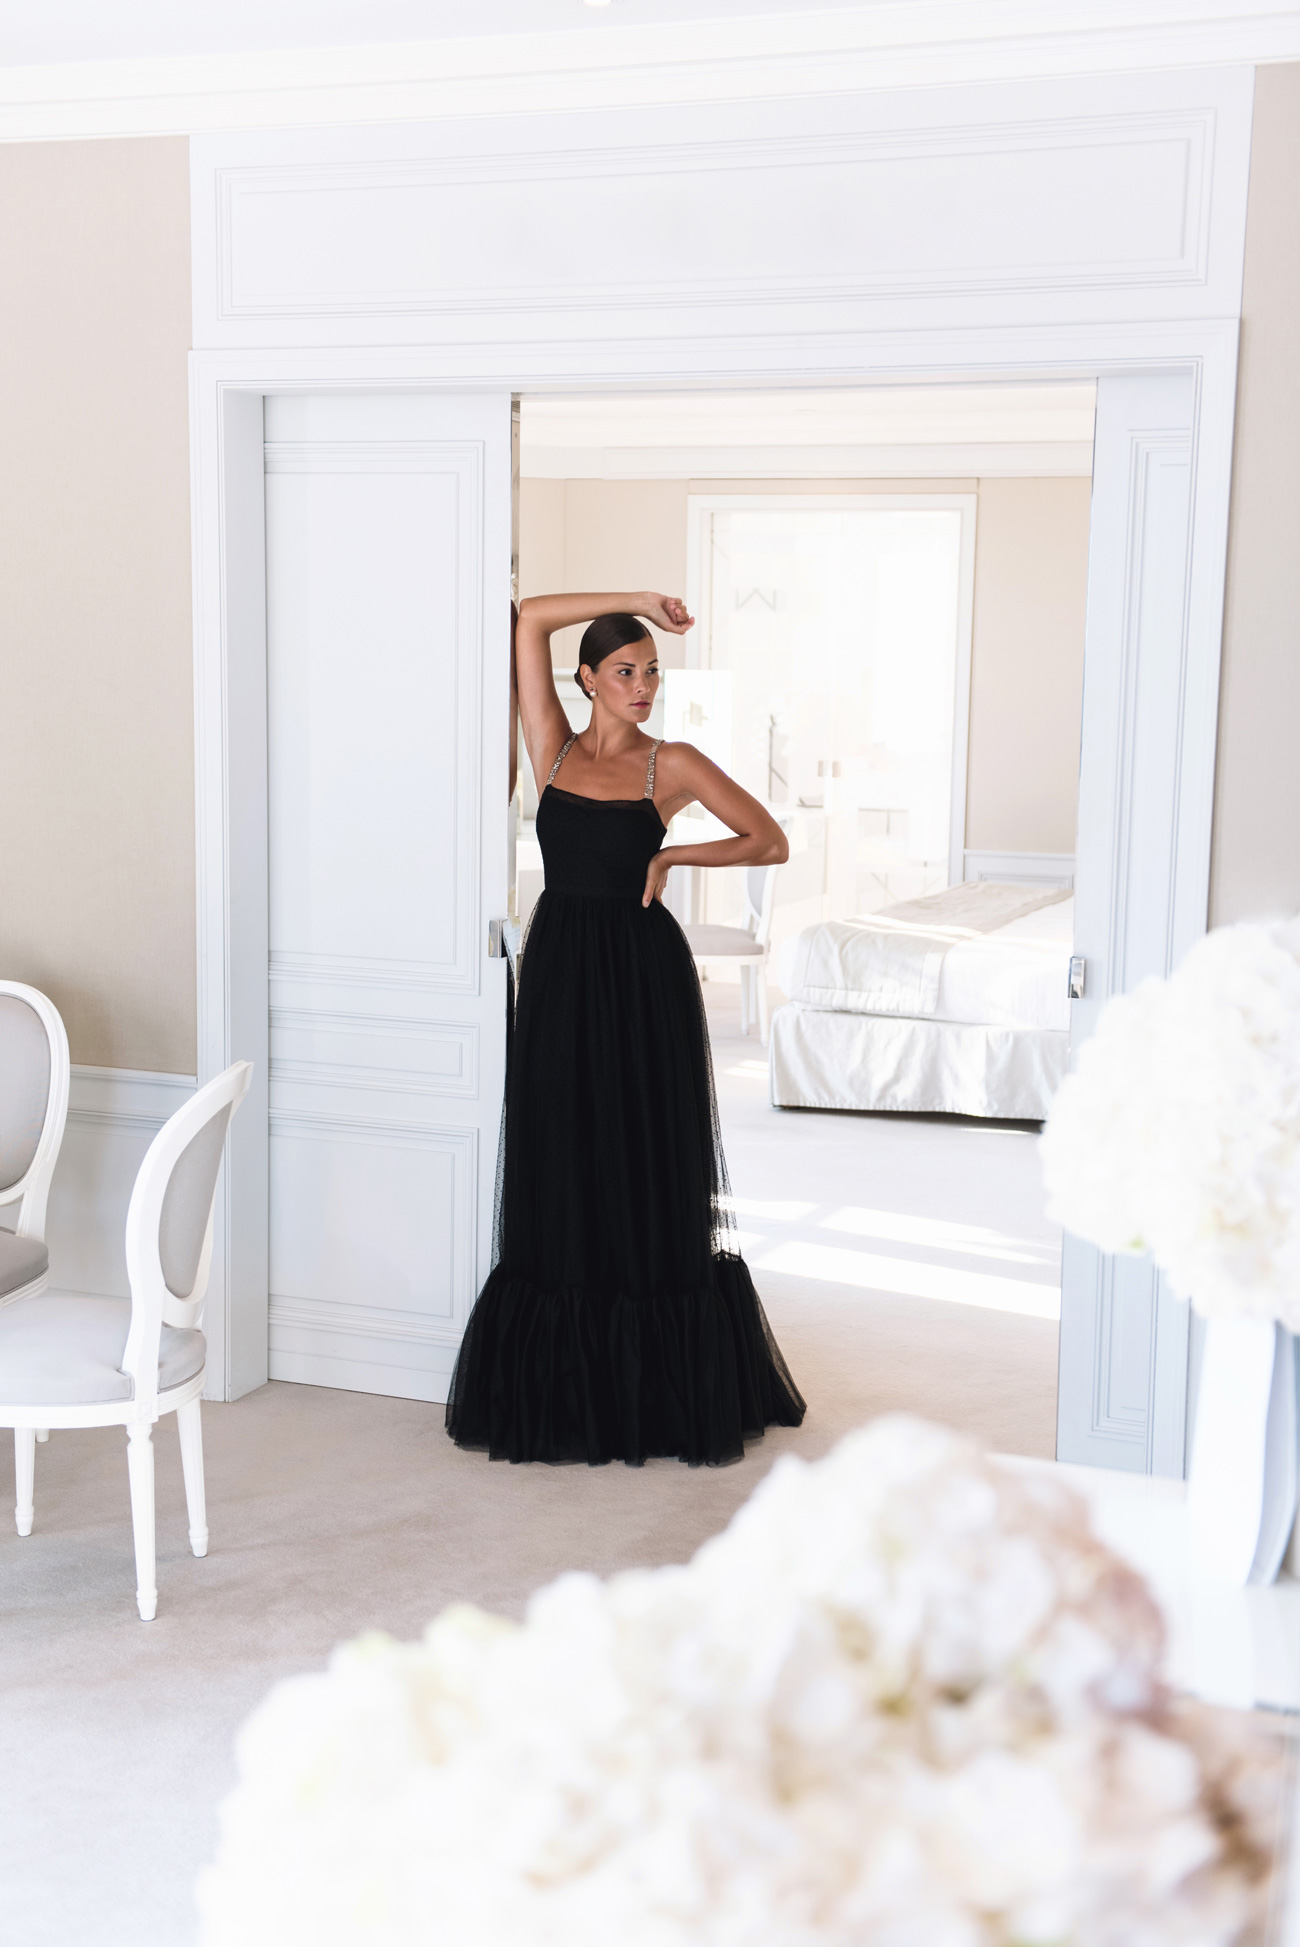 high-end-luxury-beauty-shooting-dior-cannes-blogger-nina-schwichtenberg-fashiioncarpet